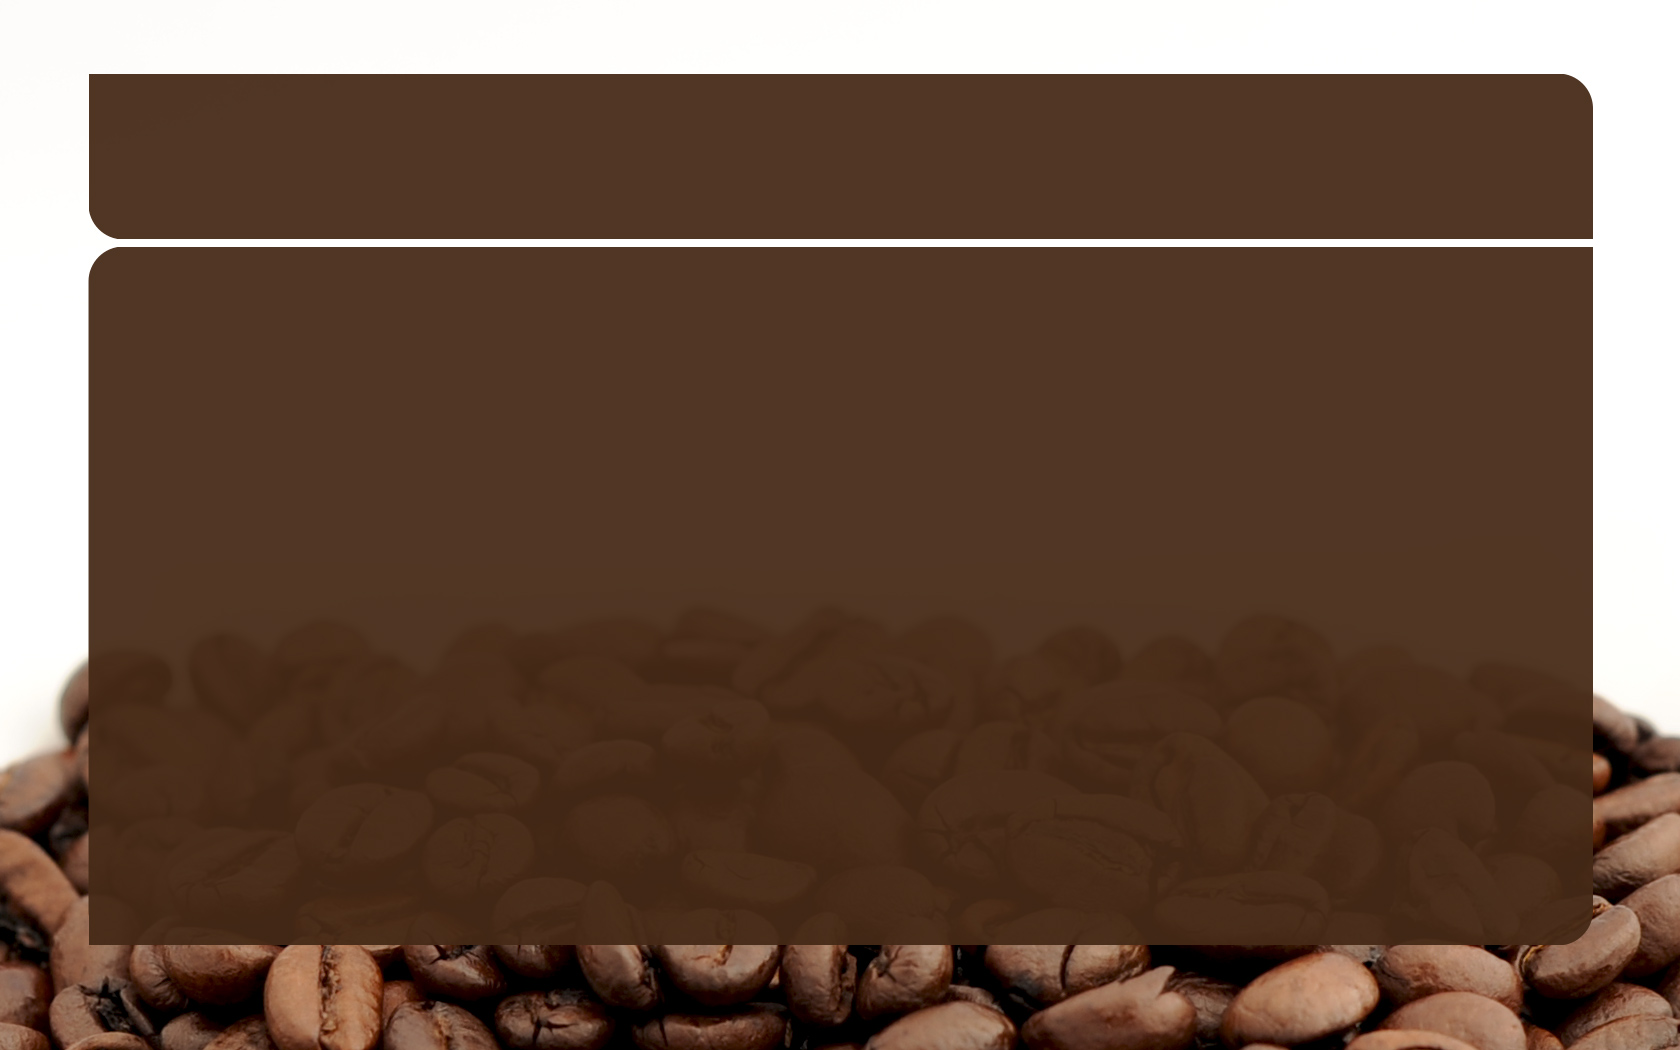 Free coffee powerpoint template free coffee powerpoint template photo 19 toneelgroepblik Image collections